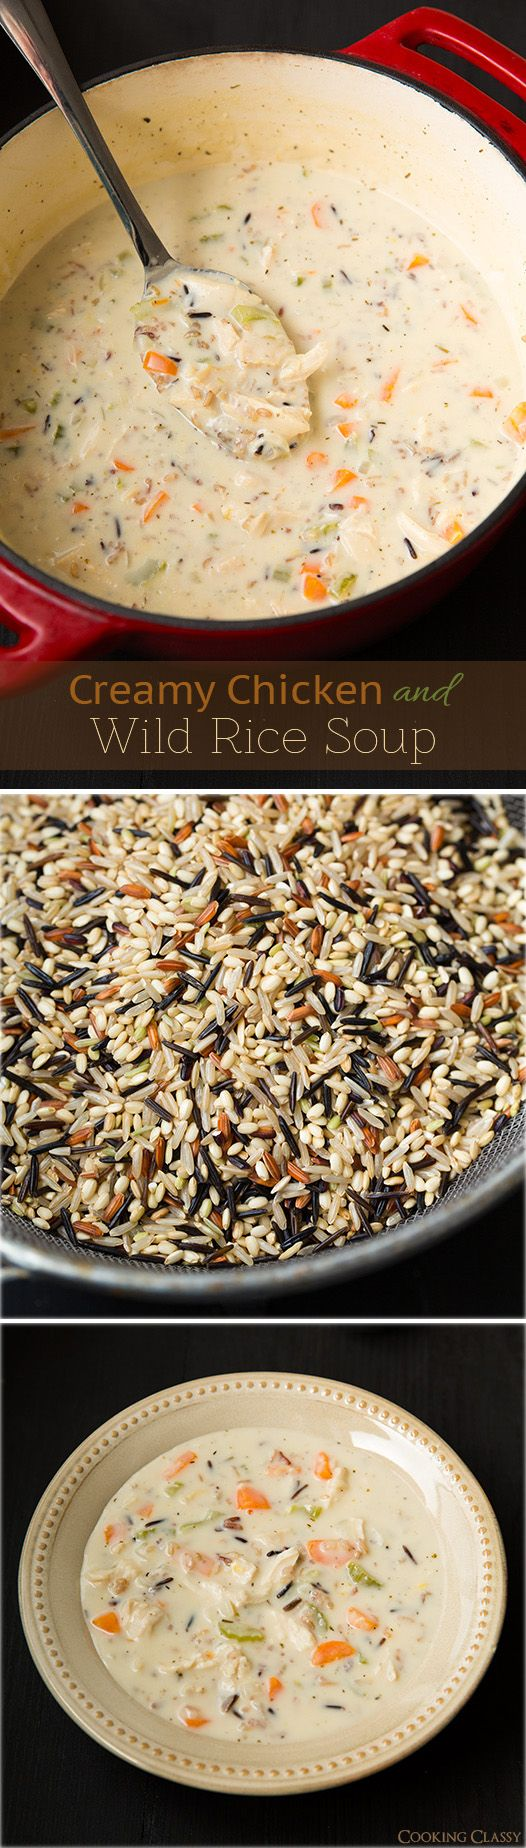 Creamy Chicken and Wild Rice Soup -creamy and delicious says pinner. I used only thyme and rosemary, but will decrease each next time. I also used an Uncle Ben's wild rice mix and subbed non-fat half & half for the heavy cream. Good but nothing special. I will be trying some of the other dozen wild rice soups on my Pinterest Good Eats board before settling on this one.